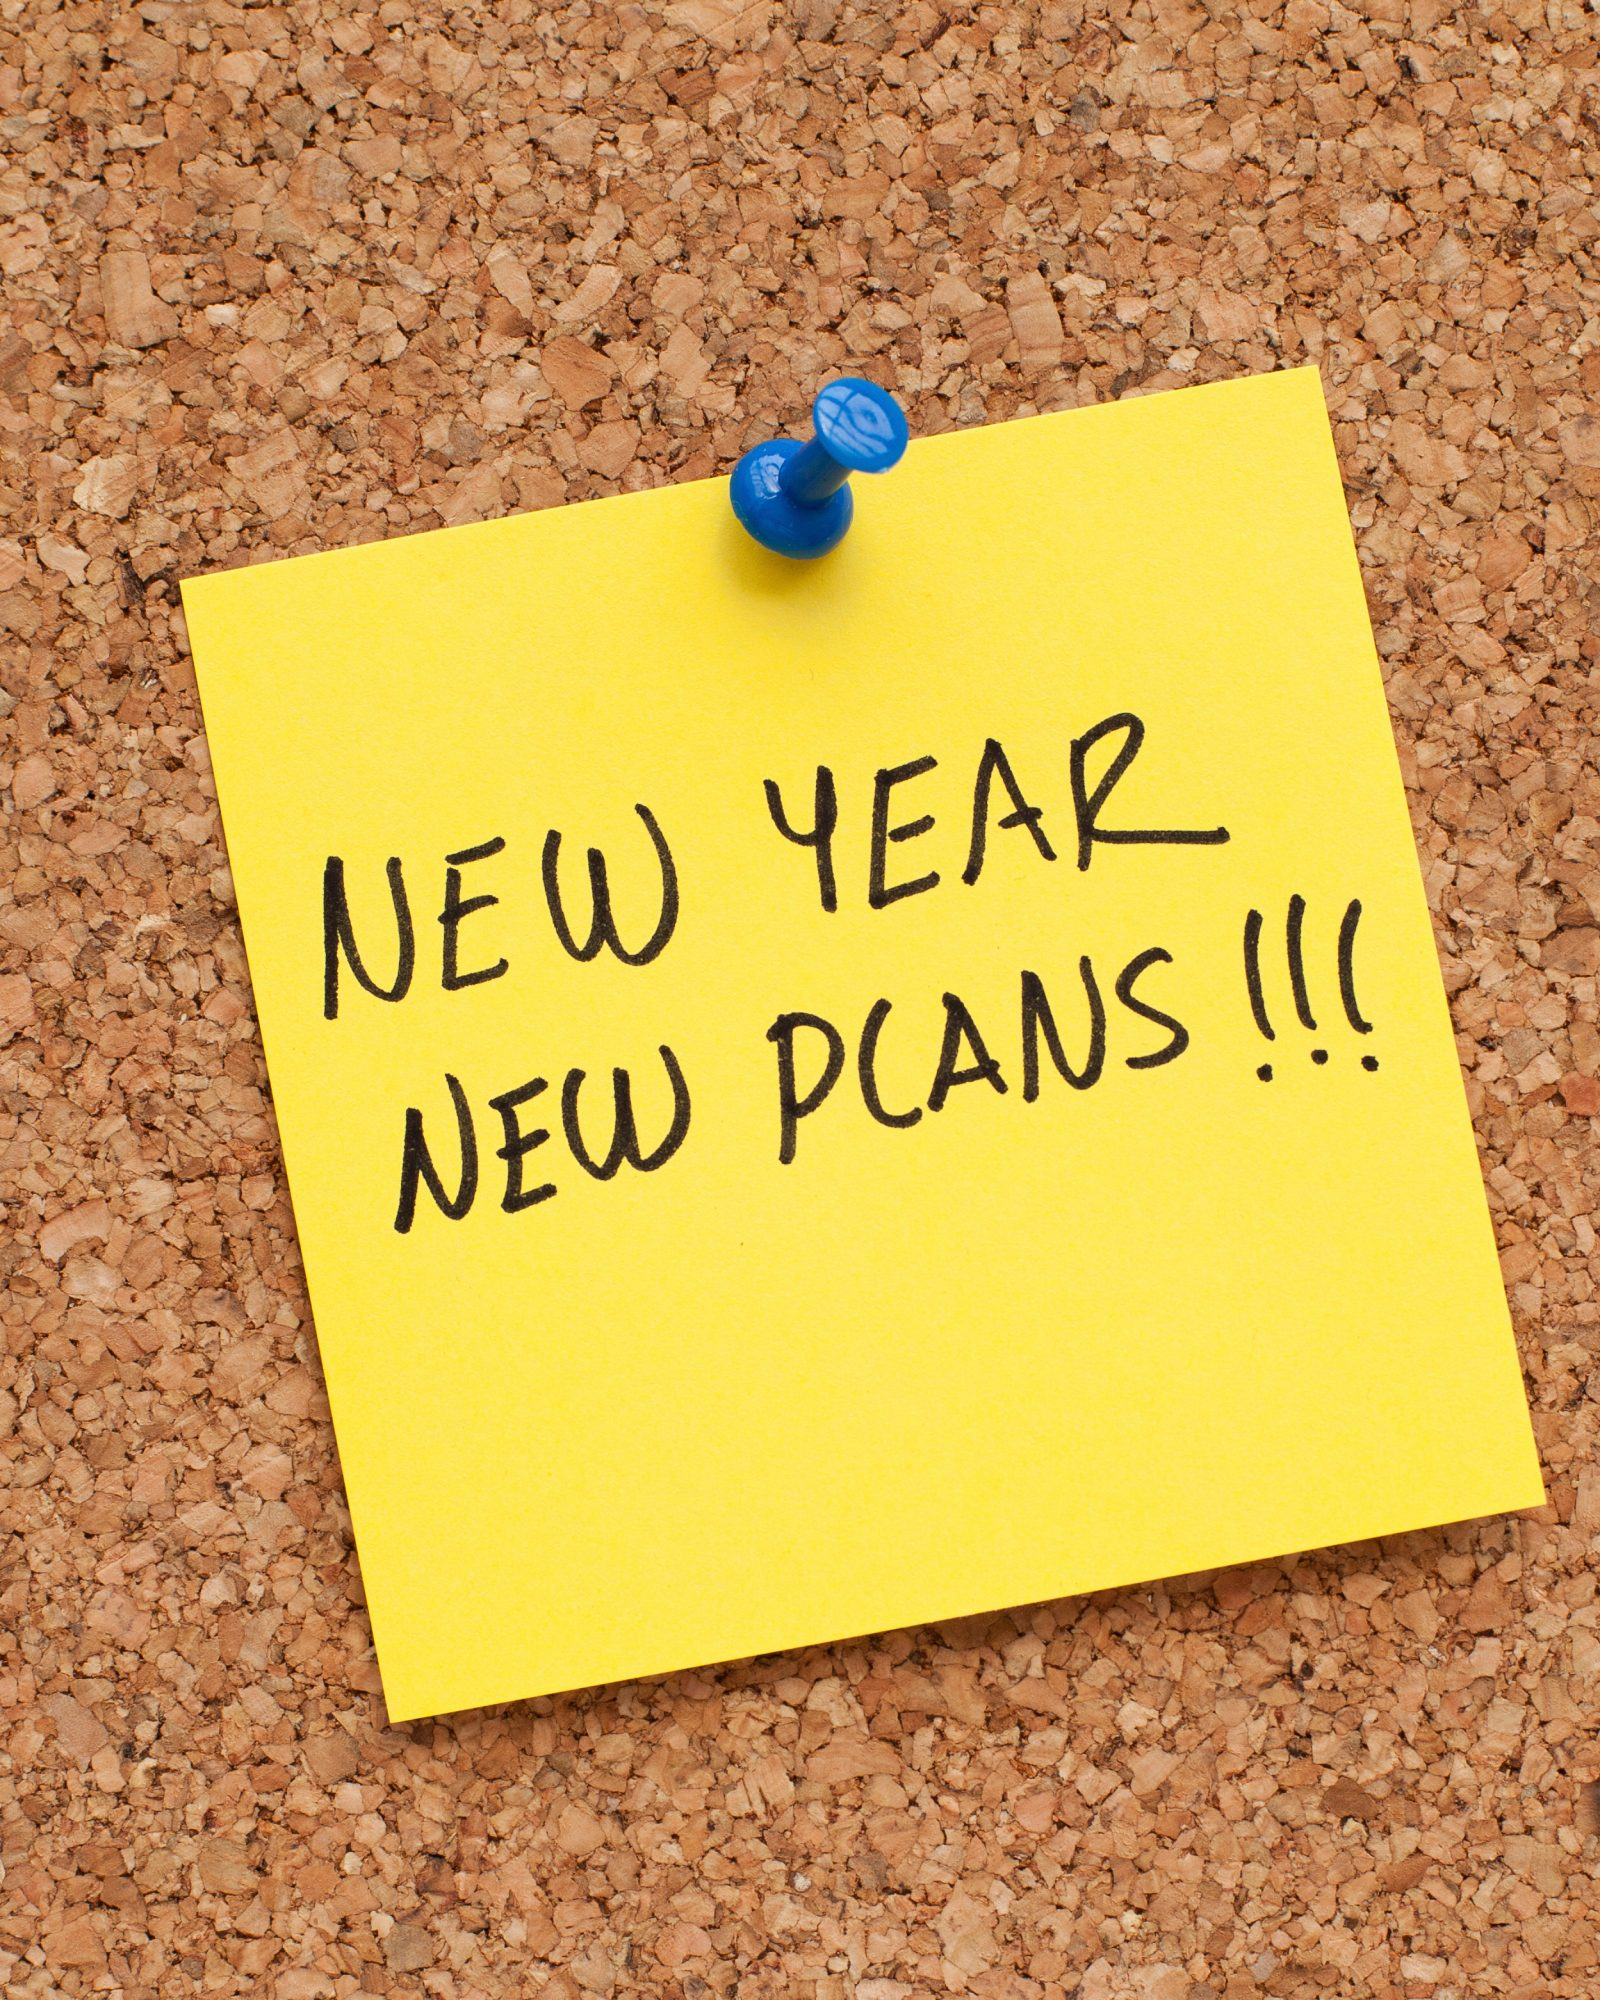 new-years-resolutions-relationship-post-it-1215.jpg